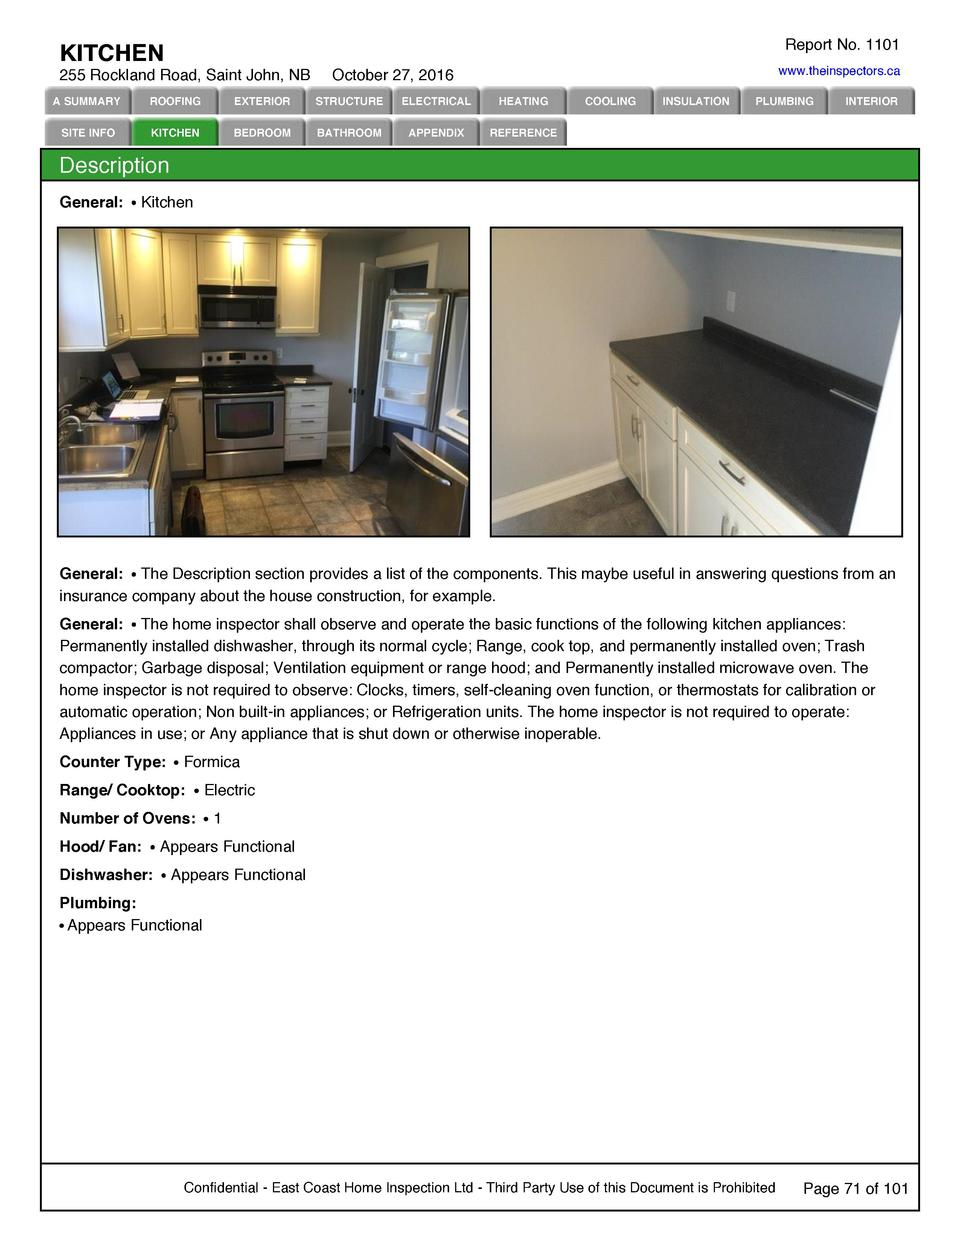 Report No. 1101  KITCHEN 255 Rockland Road, Saint John, NB  www.theinspectors.ca  October 27, 2016  A SUMMARY  ROOFING  EX...